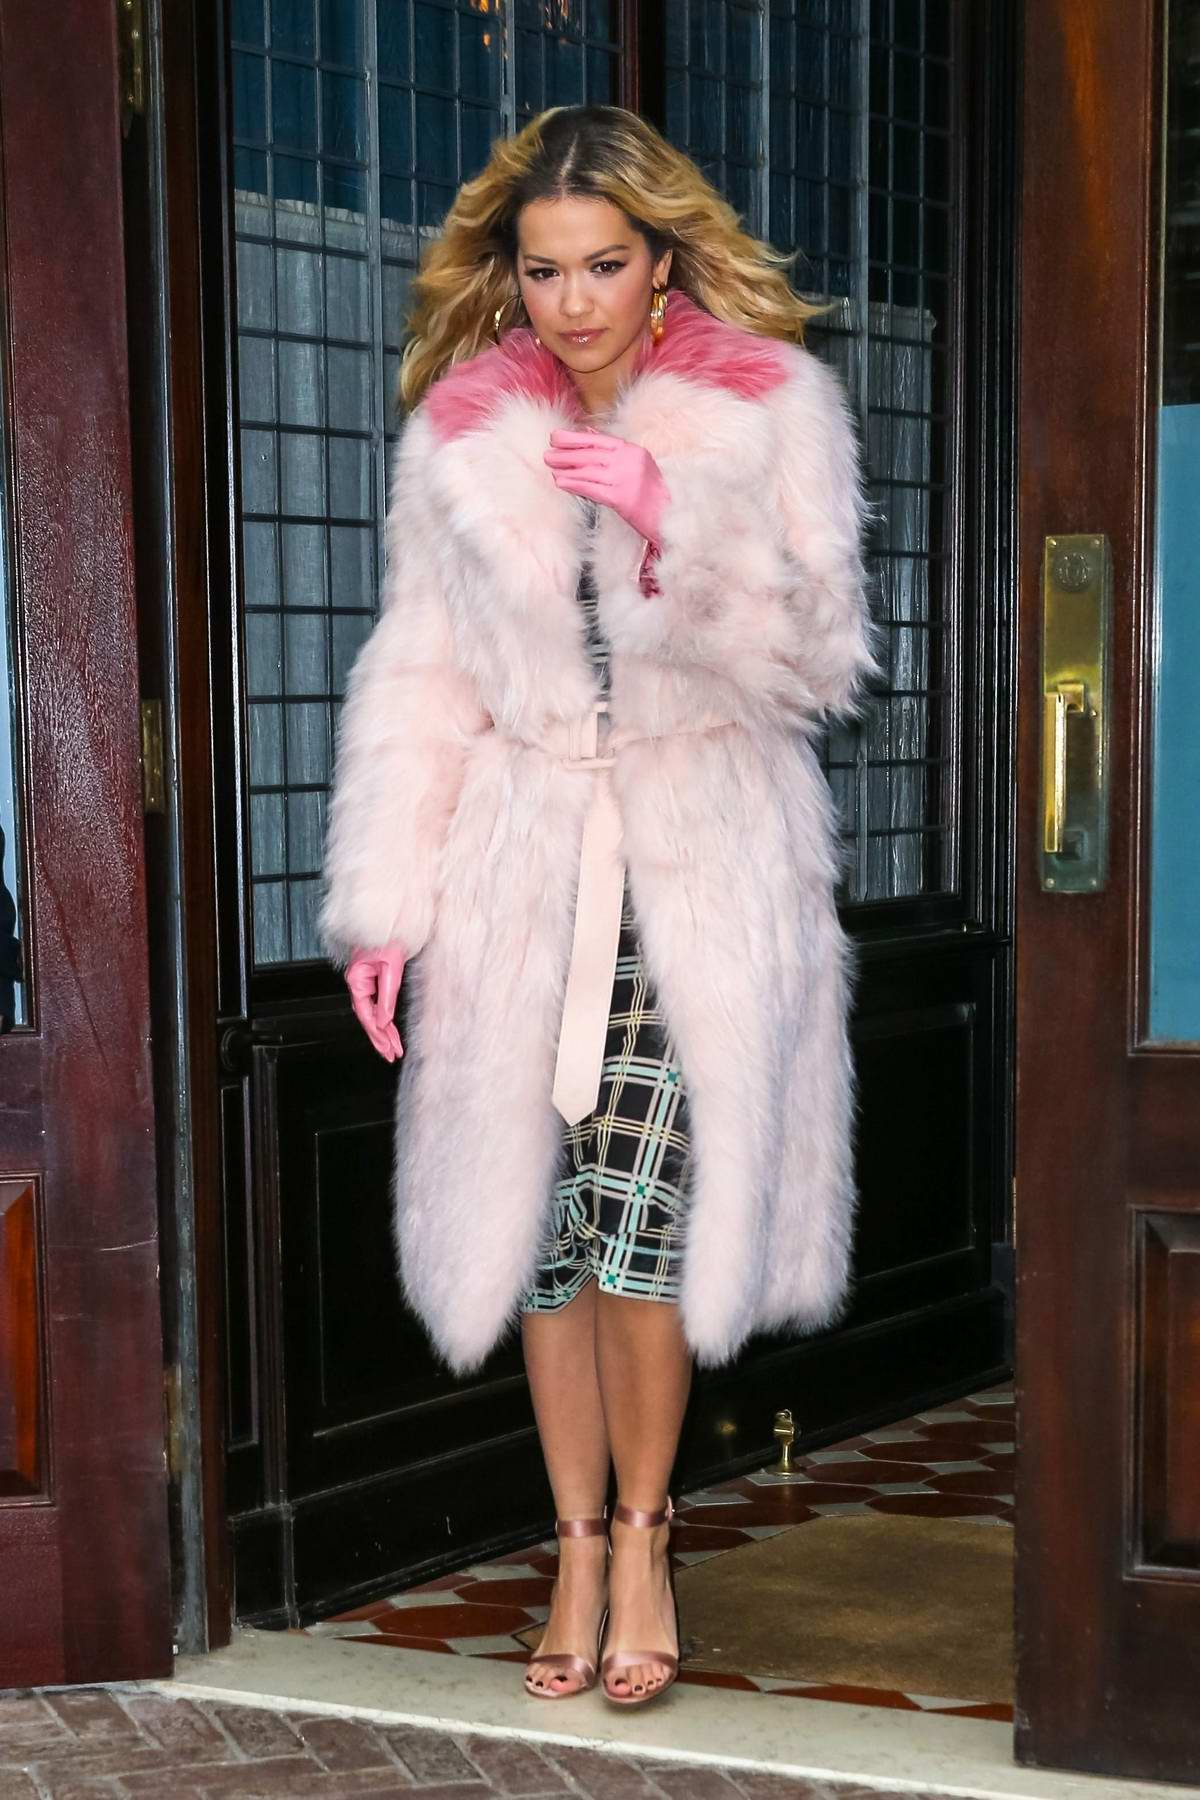 Rita Ora spotted as she leaves 'The Tonight Show Starring Jimmy Fallon' wearing a light pink fur trench coat in New York